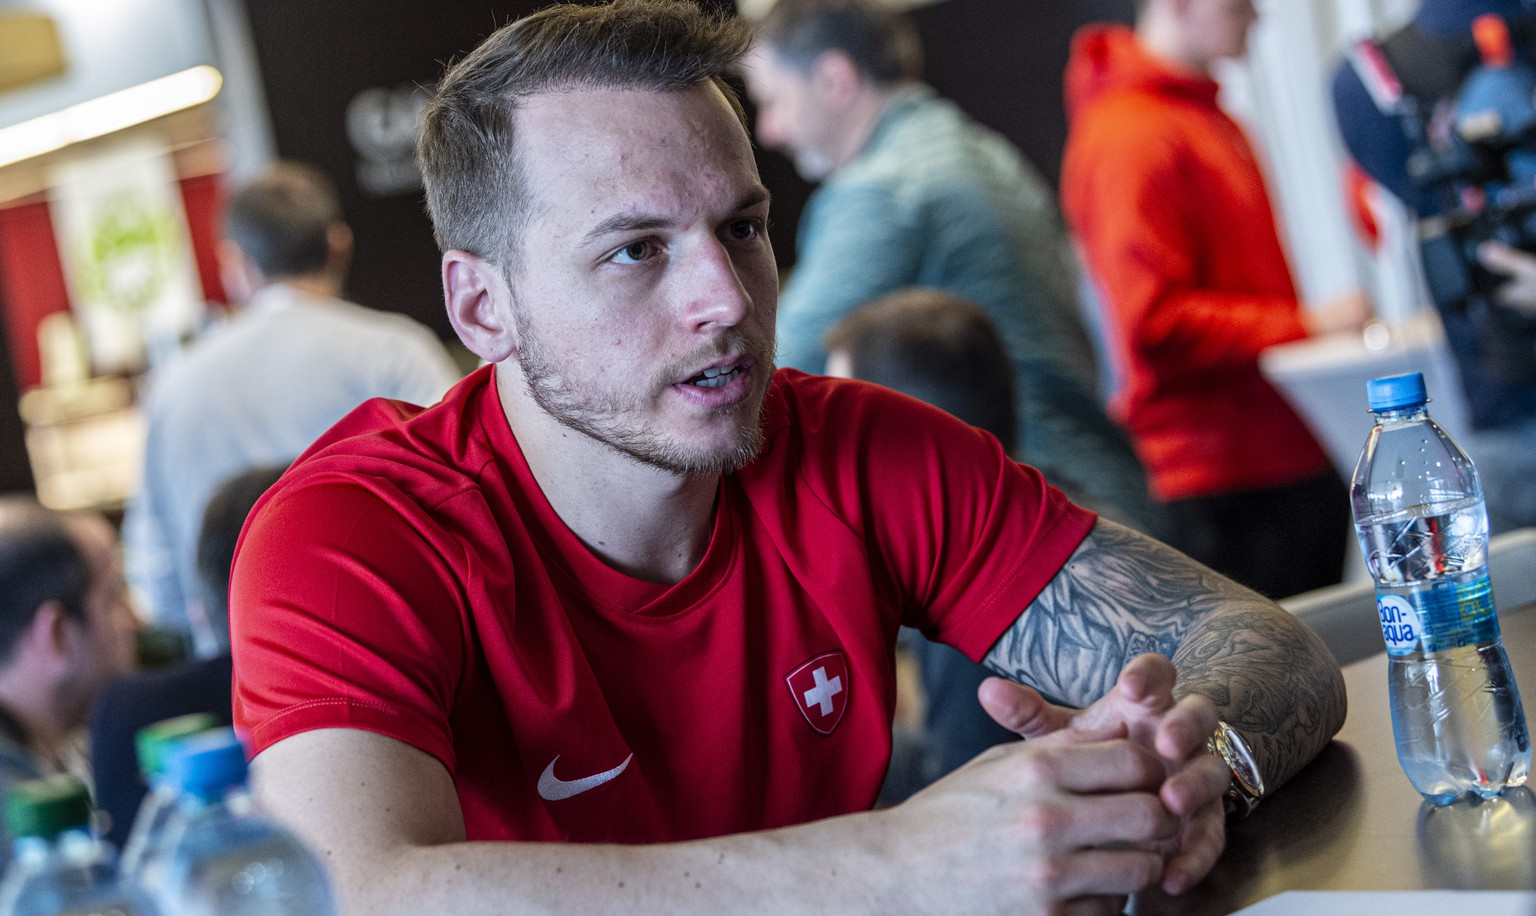 Switzerland`s Sven Andrighetto speaks with the Journalist during the Media Day from Team Switzerland, at the IIHF 2019 World Ice Hockey Championships, at the Ondrej Nepela Arena in Bratislava, Slovakia, on Friday, May 17, 2019. (KEYSTONE/Melanie Duchene)